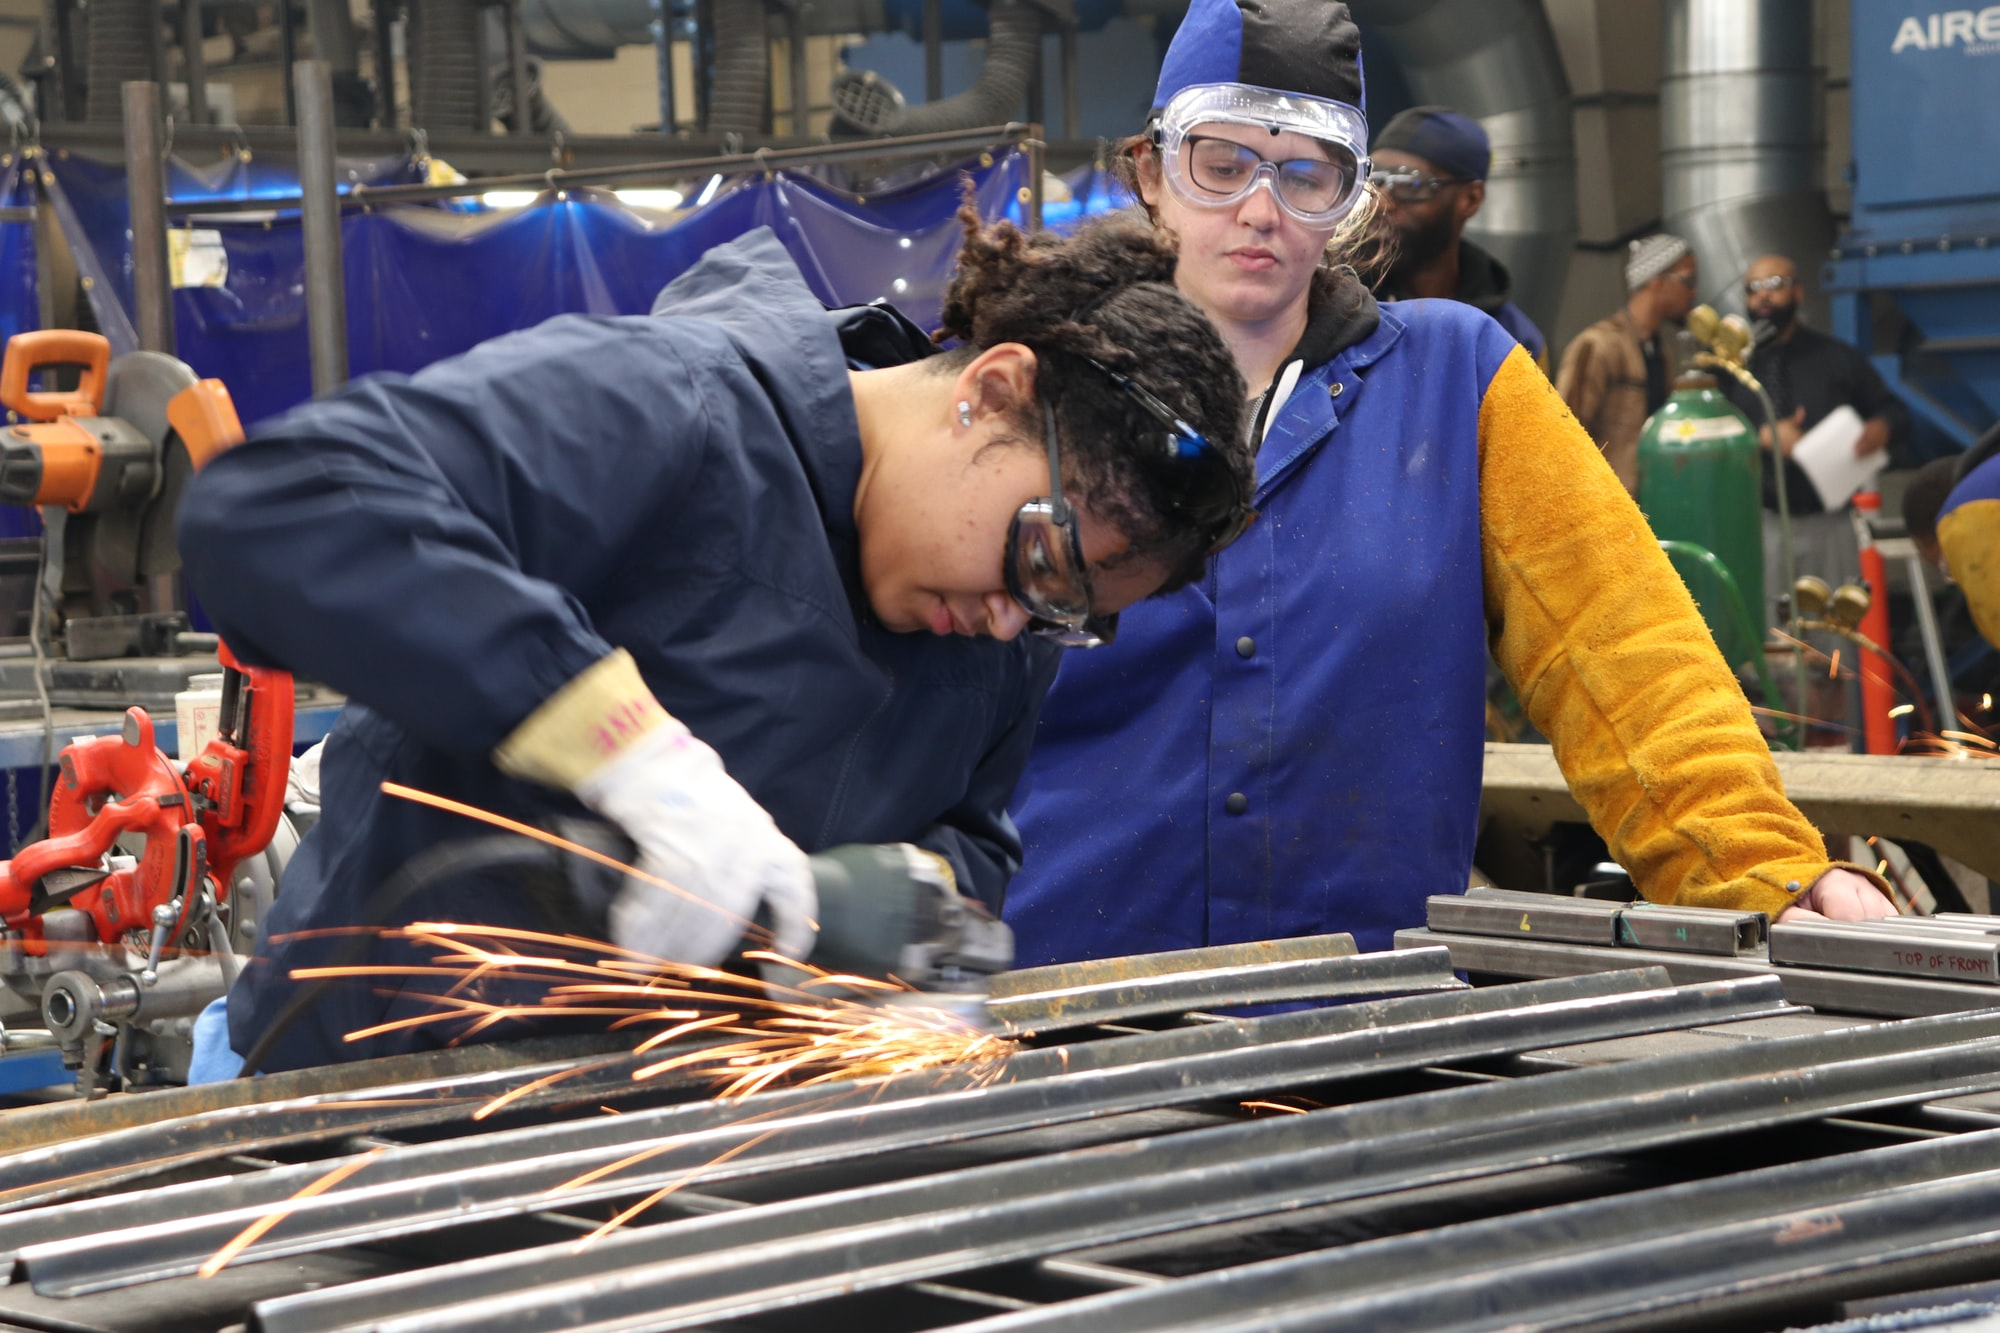 Choose Trade school over College or University - PTT EDU  Vocational Trade Schools are benefitting students more than attending colleges. Traditional-college enrolment in the US rates doubles in the pandemic.  https://ptt.edu/blog/choose-trade-school-over-college-or-university/